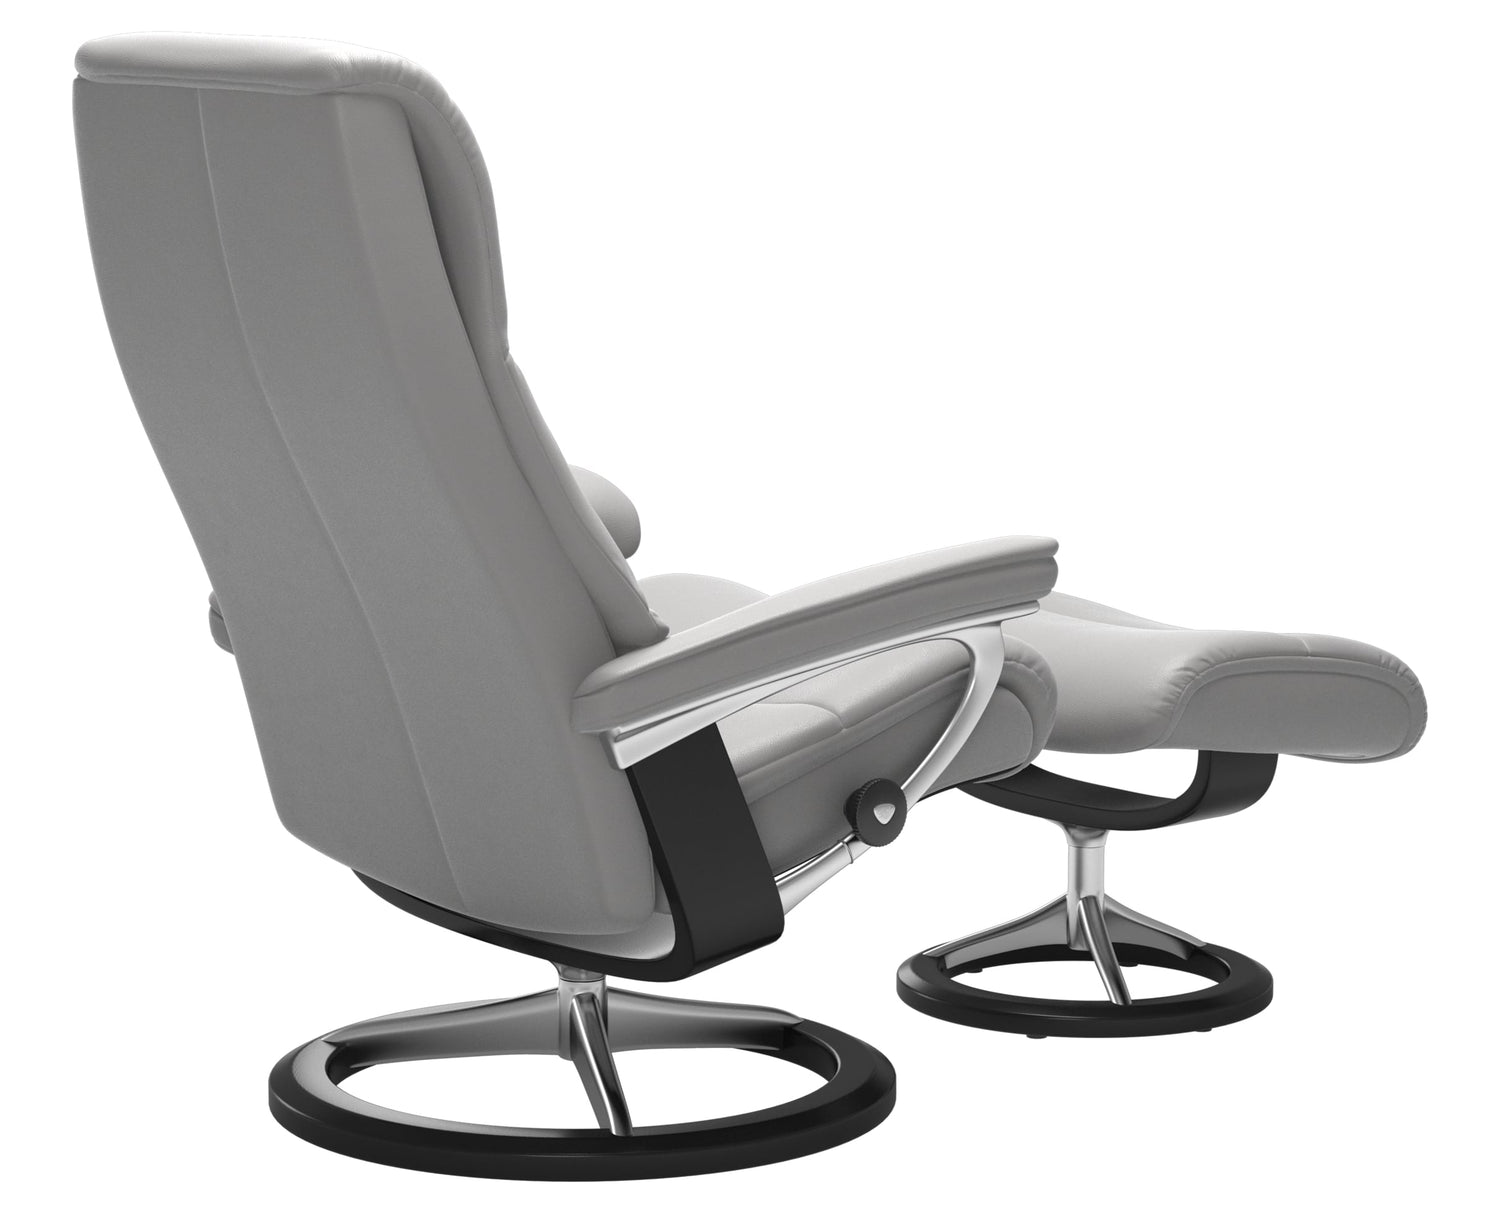 Cori Leather Silver Cloud M/L & Black Base | Stressless View Signature Recliner | Valley Ridge Furniture